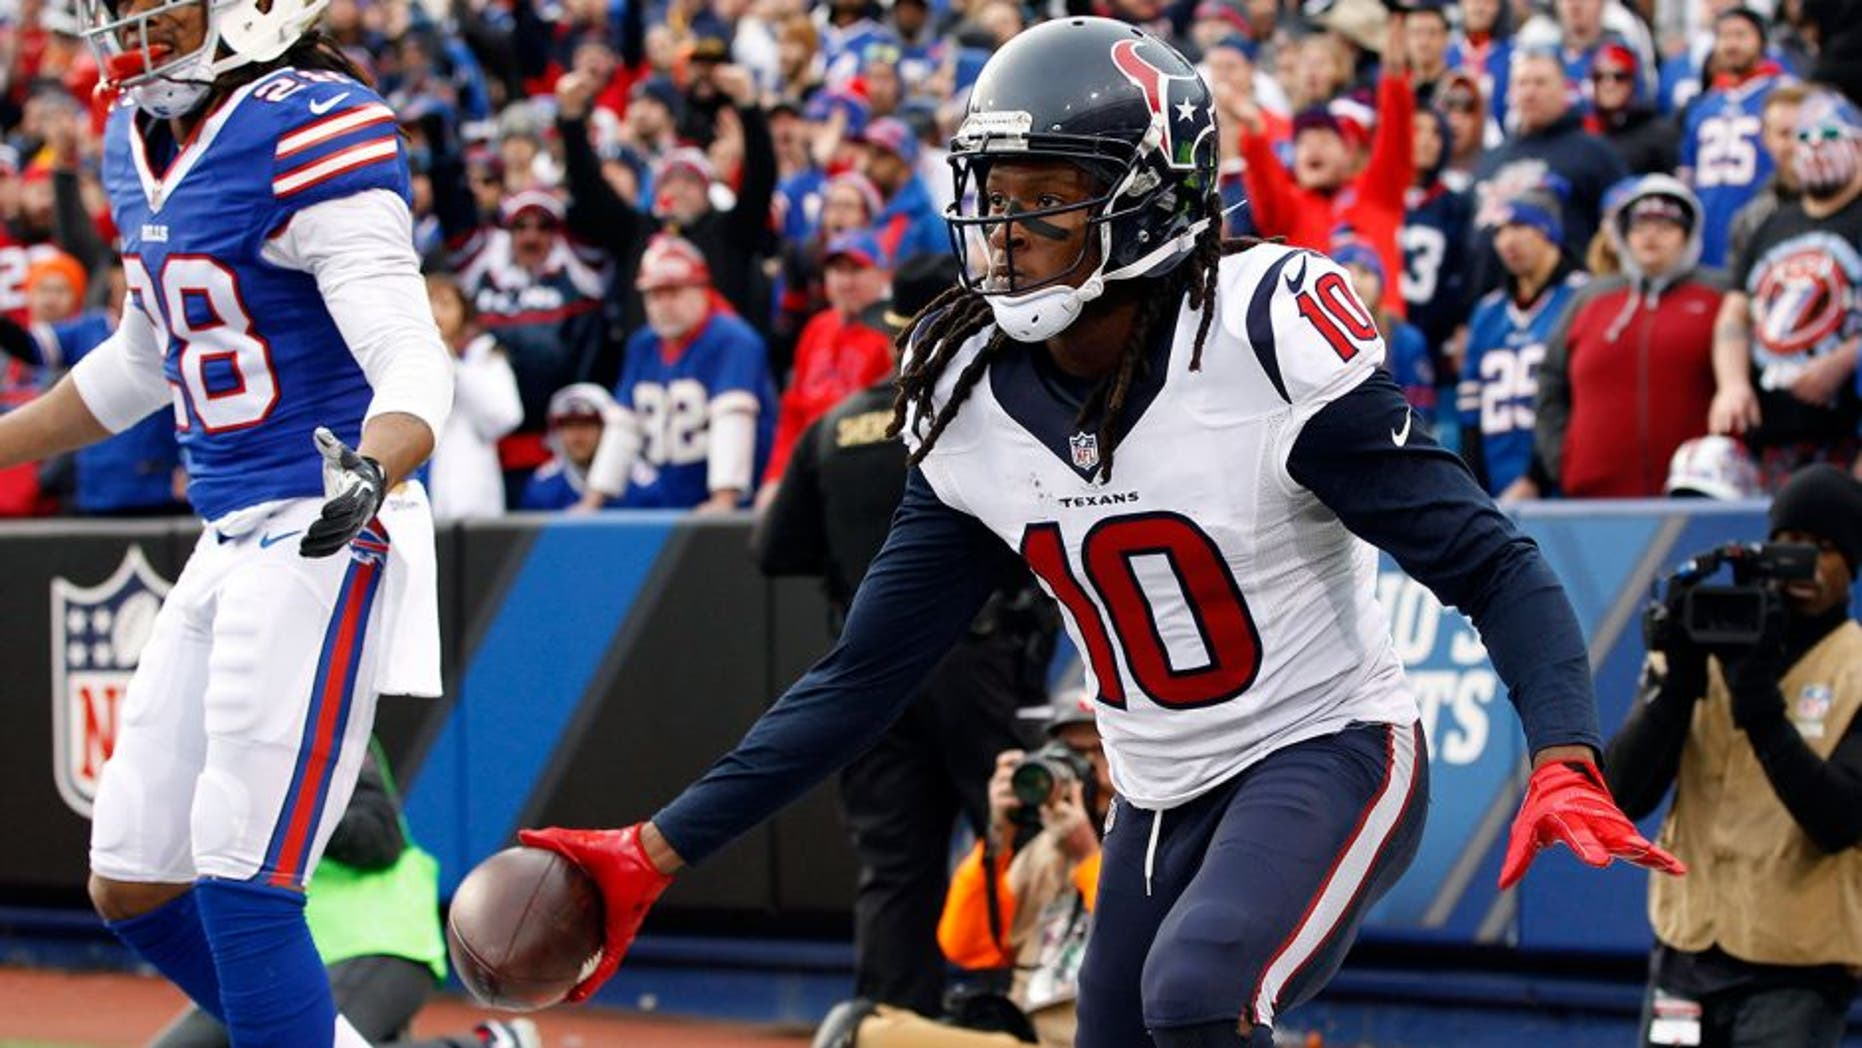 Dec 6, 2015; Orchard Park, NY, USA; Houston Texans wide receiver DeAndre Hopkins (10) celebrates his touchdown catch as Buffalo Bills cornerback Ronald Darby (28) looks on during the second half at Ralph Wilson Stadium. Bills beat the Texans 30-21. Mandatory Credit: Kevin Hoffman-USA TODAY Sports